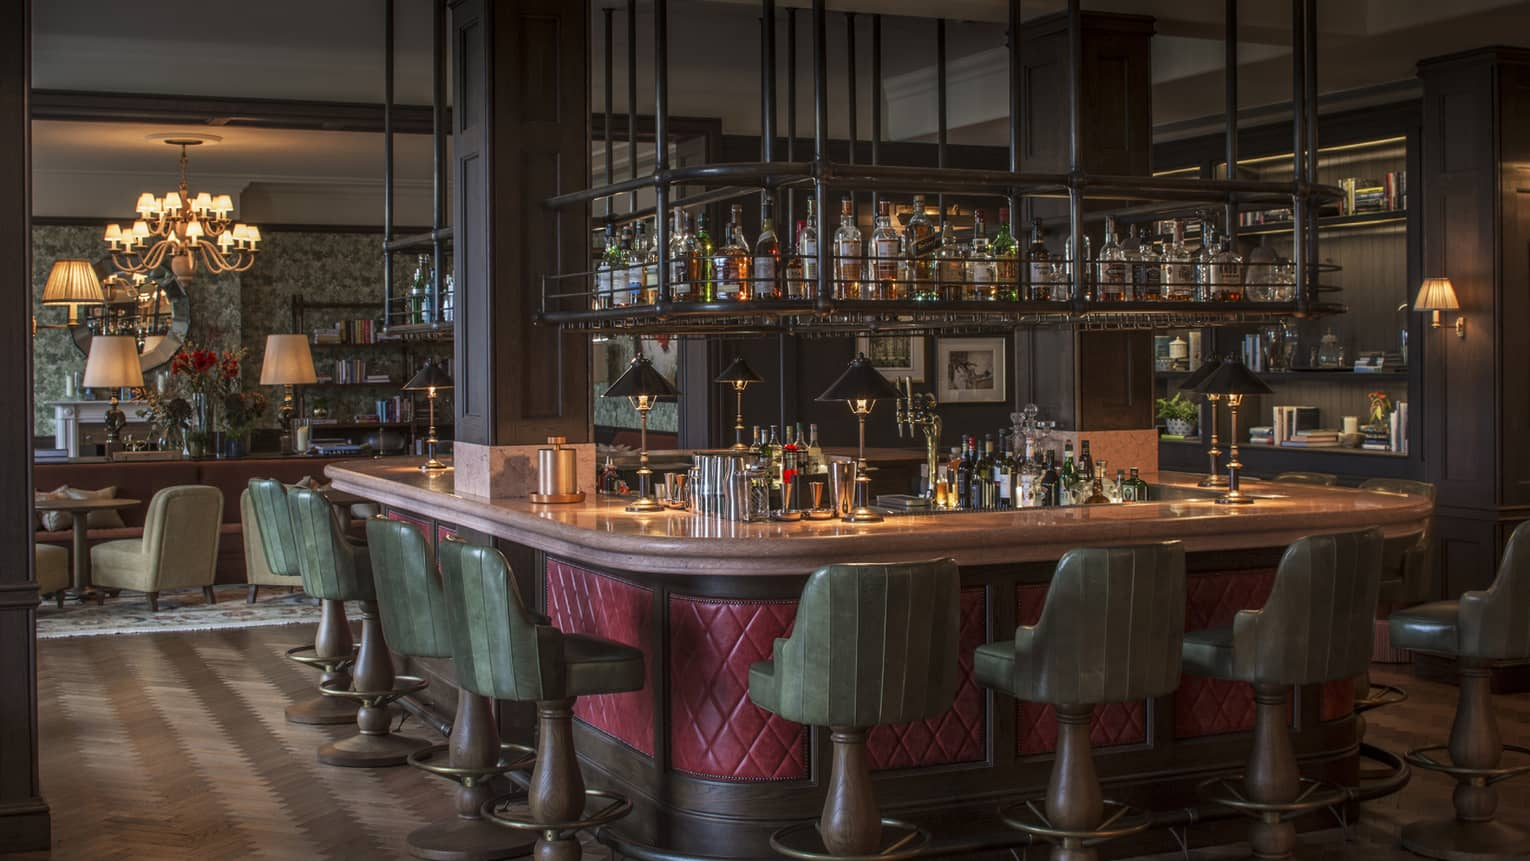 The Bar at Wild Carrot with red-wrapped and wood-accented bar, green barstools, and suspended spirits